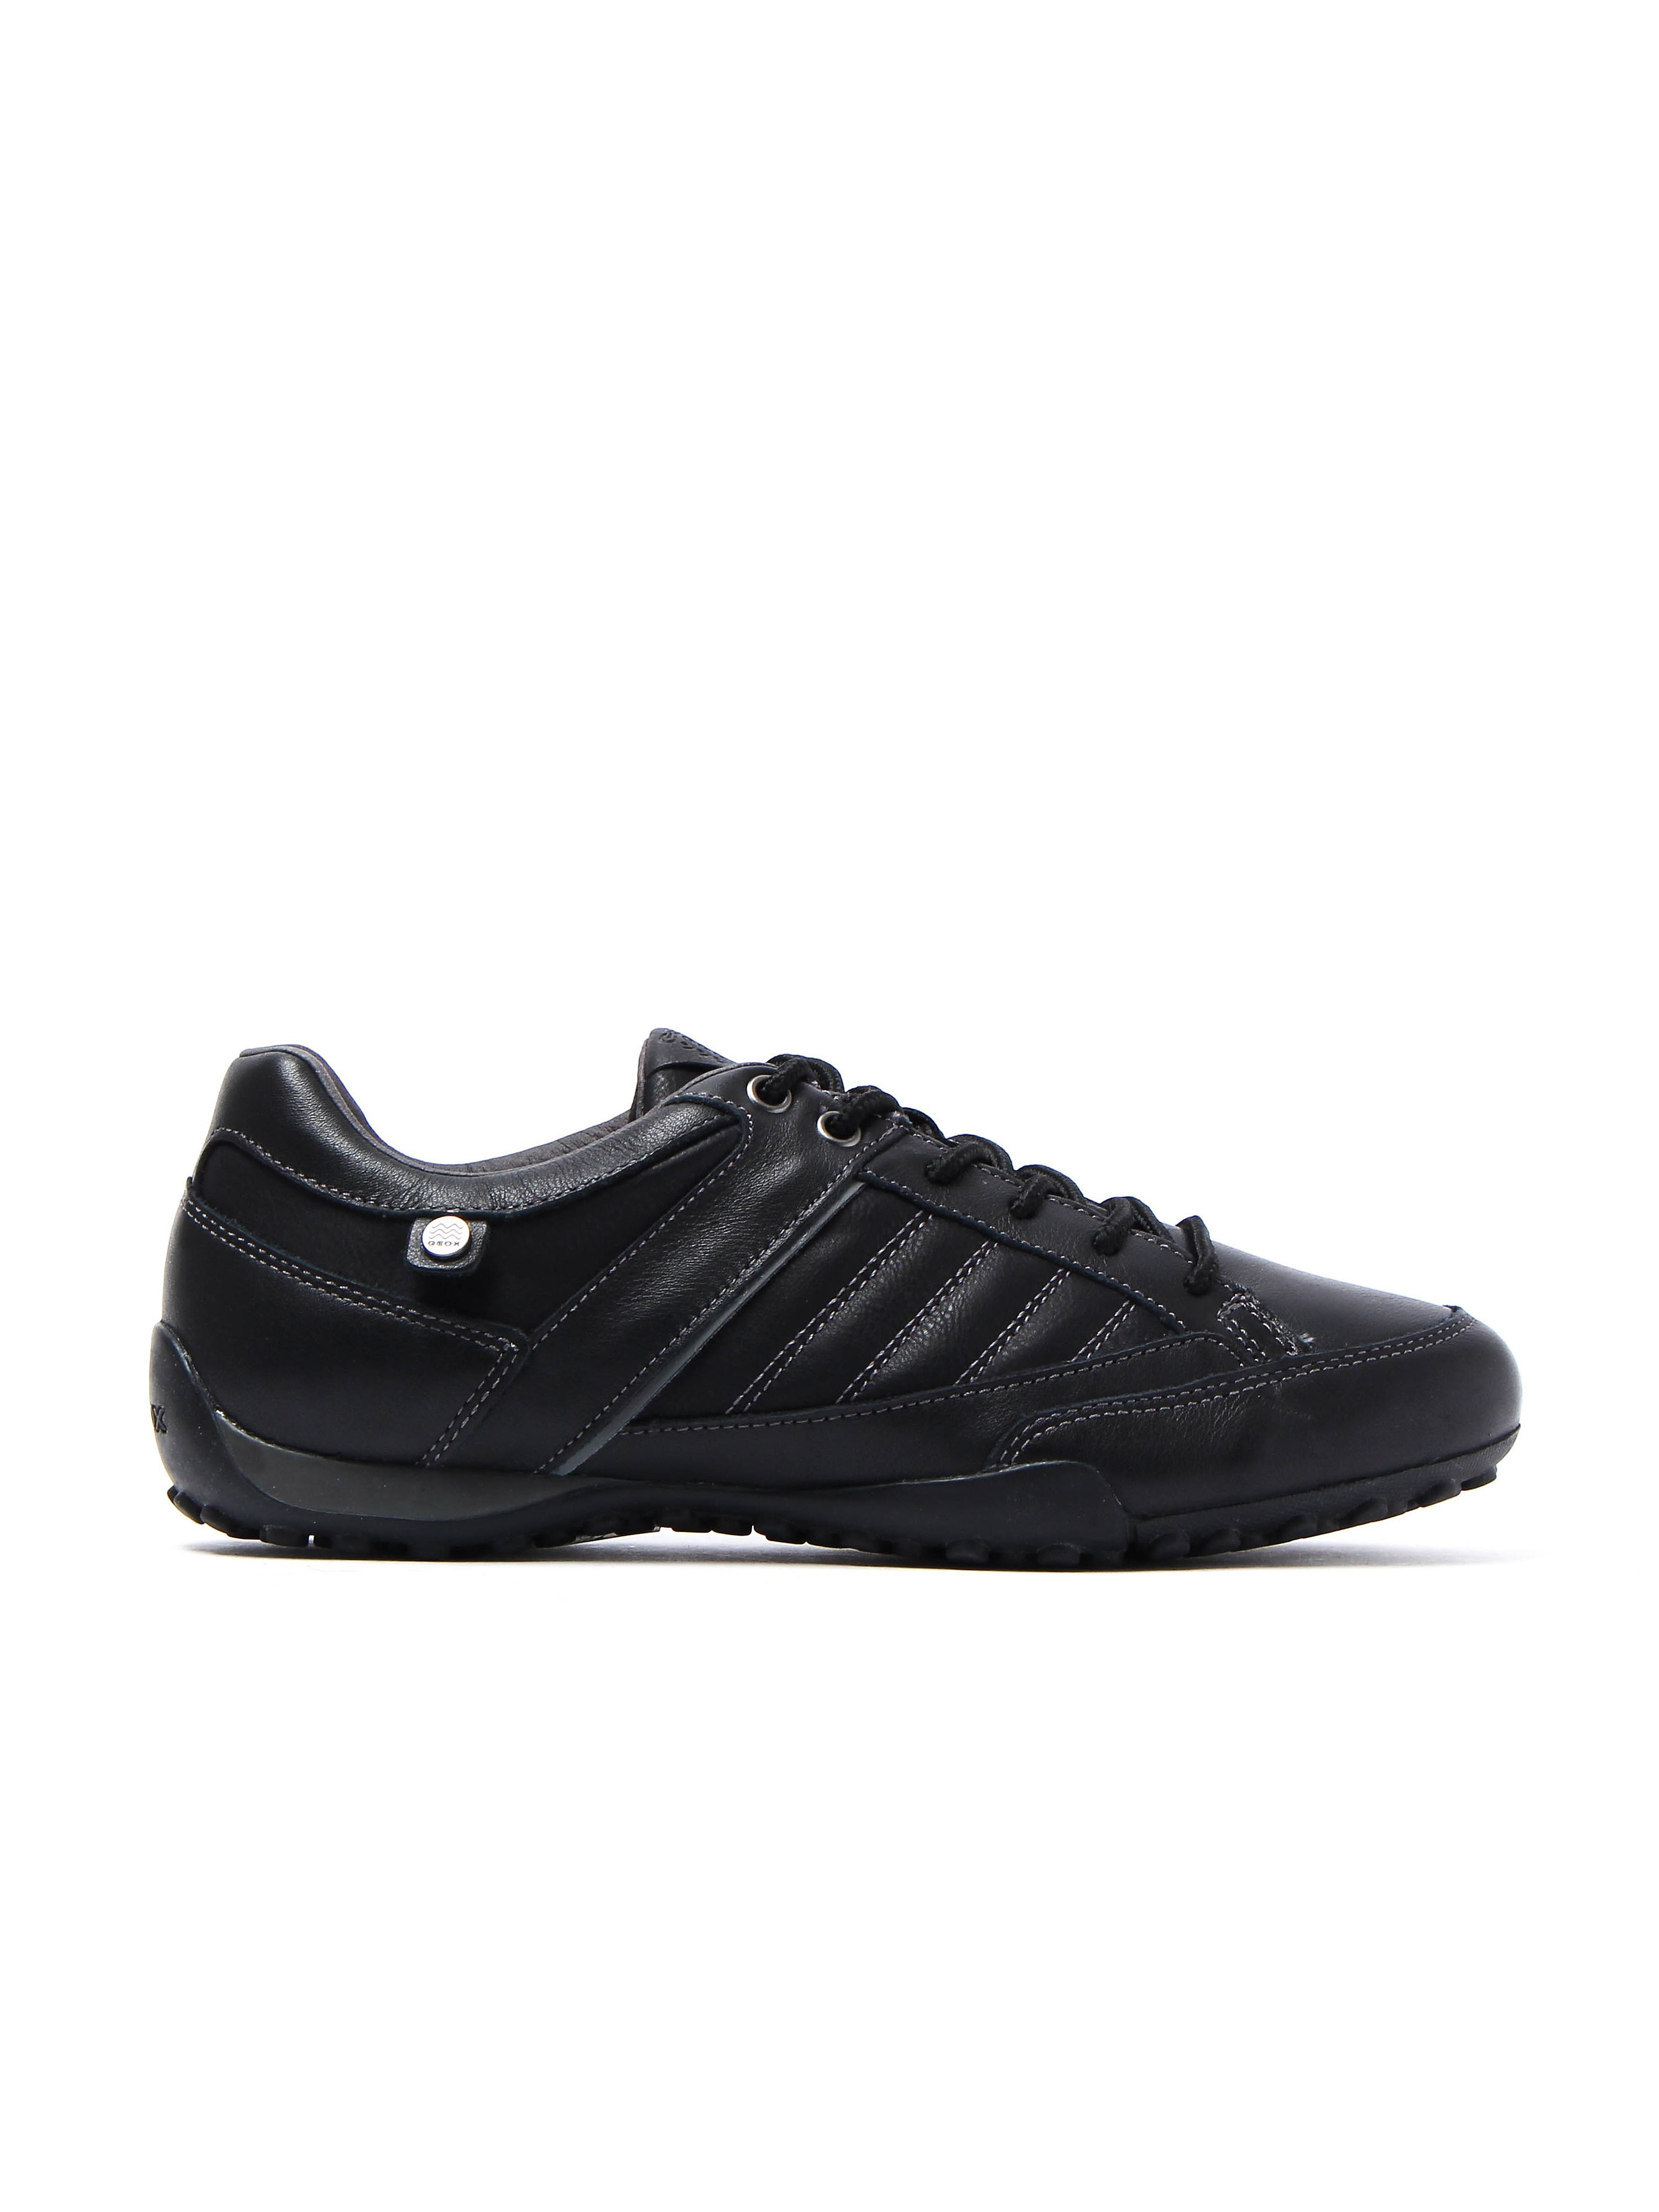 Geox Men's U Snake Trainers - Black Leather